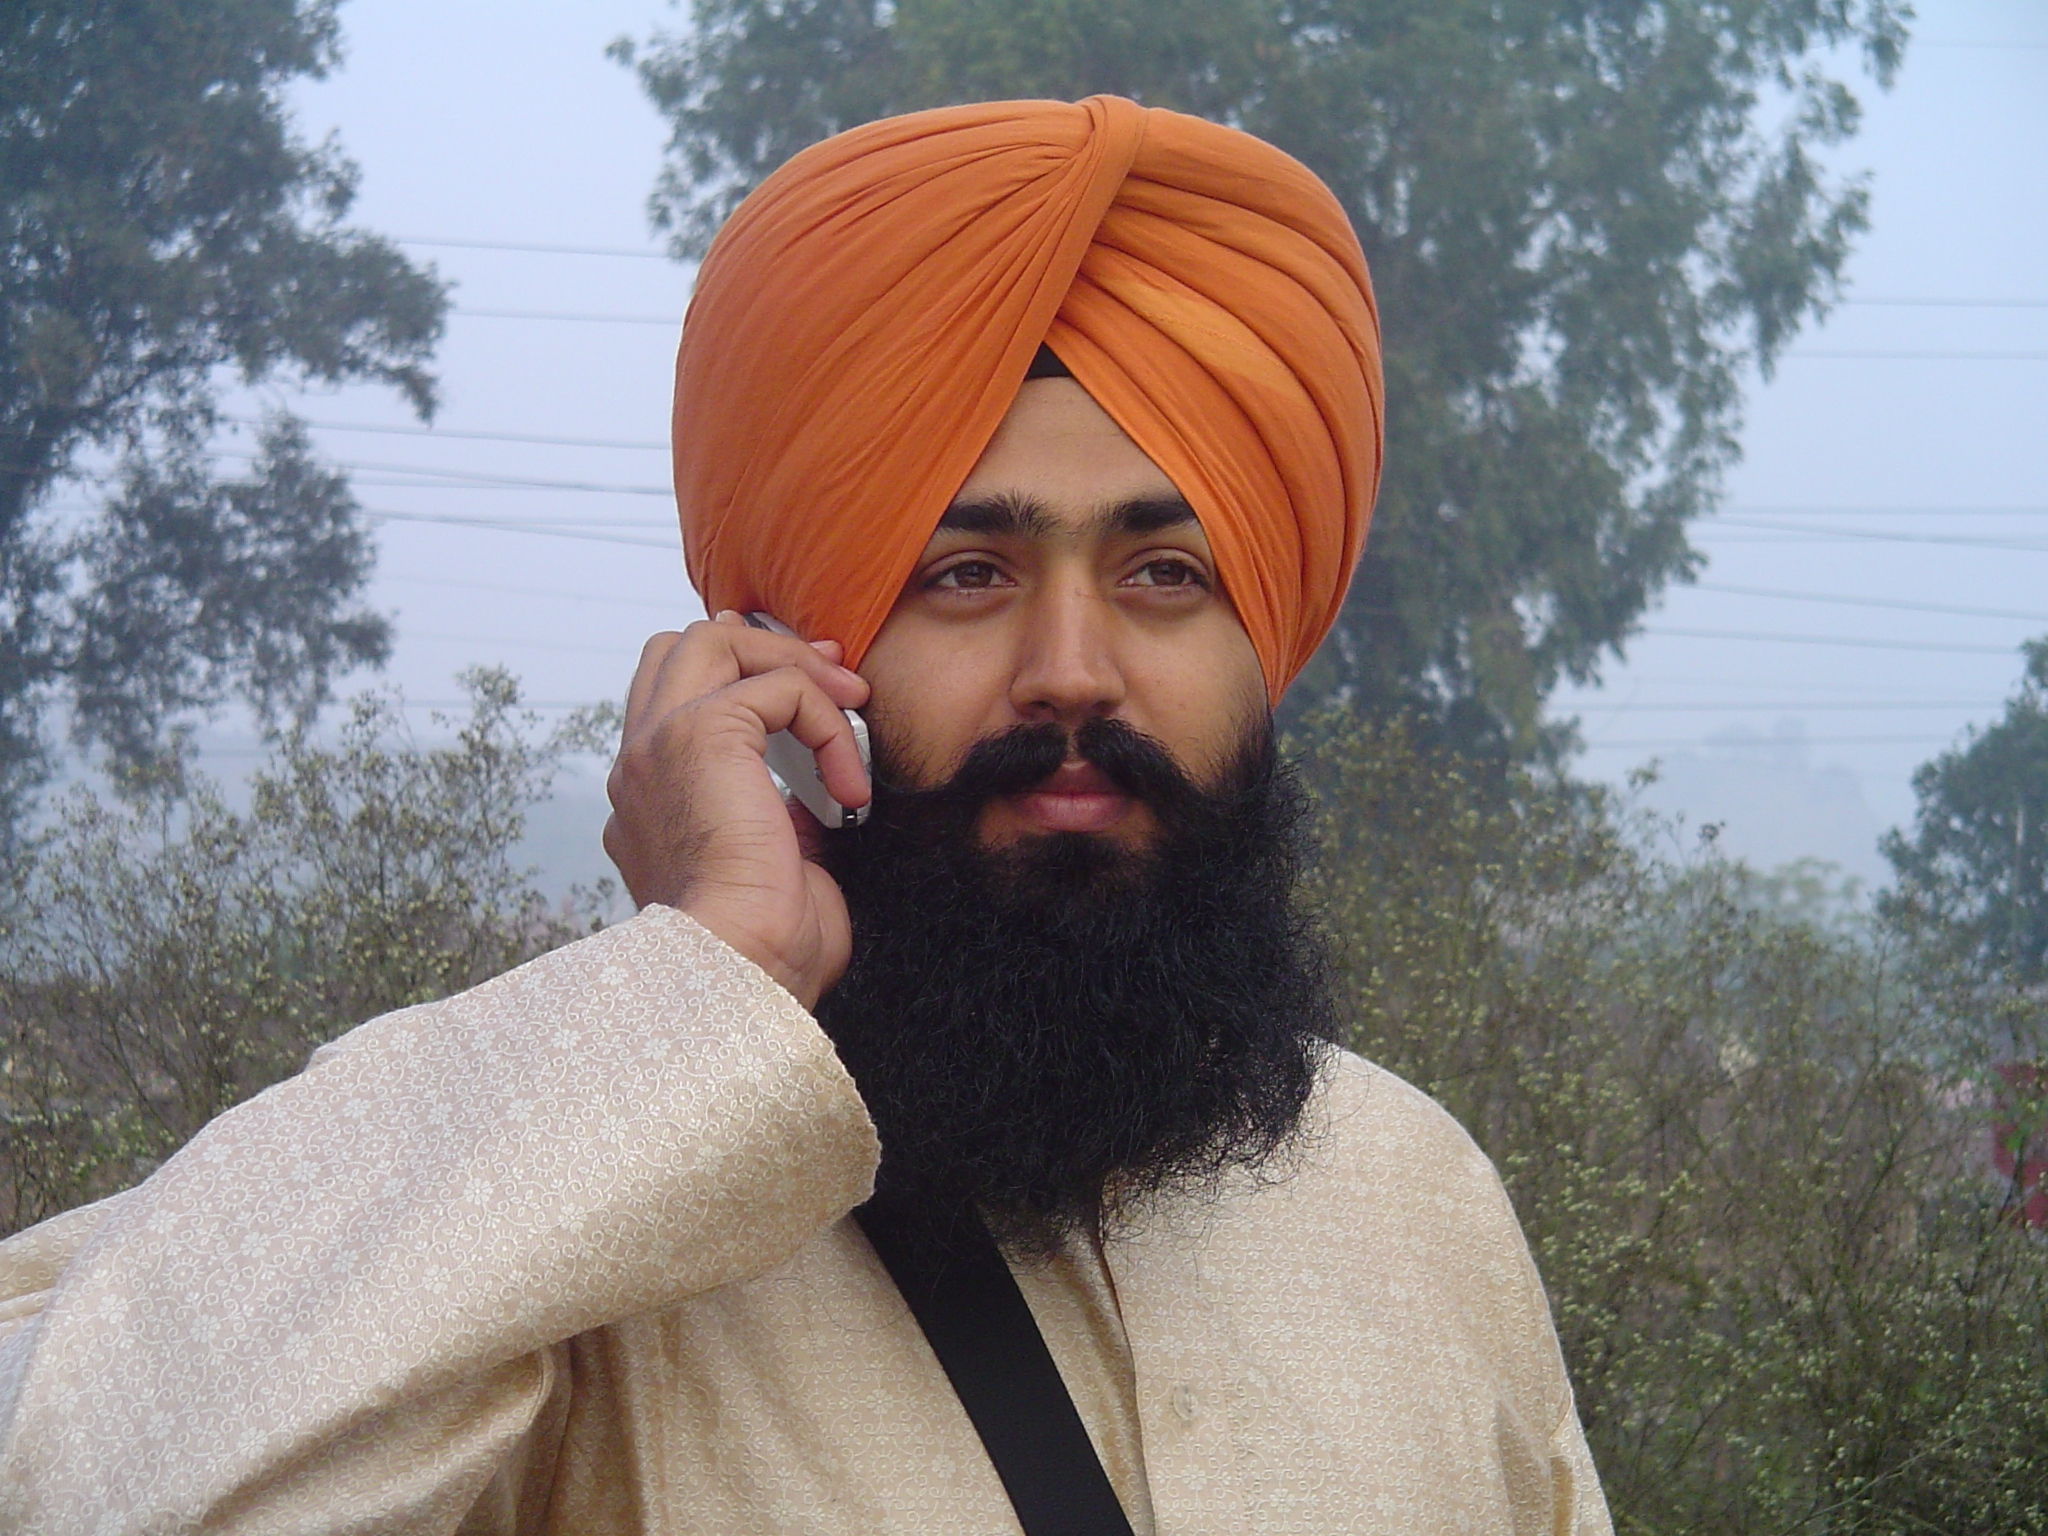 Punjabi Turban http://commons.wikimedia.org/wiki/File:Sikh_wearing_turban.jpg